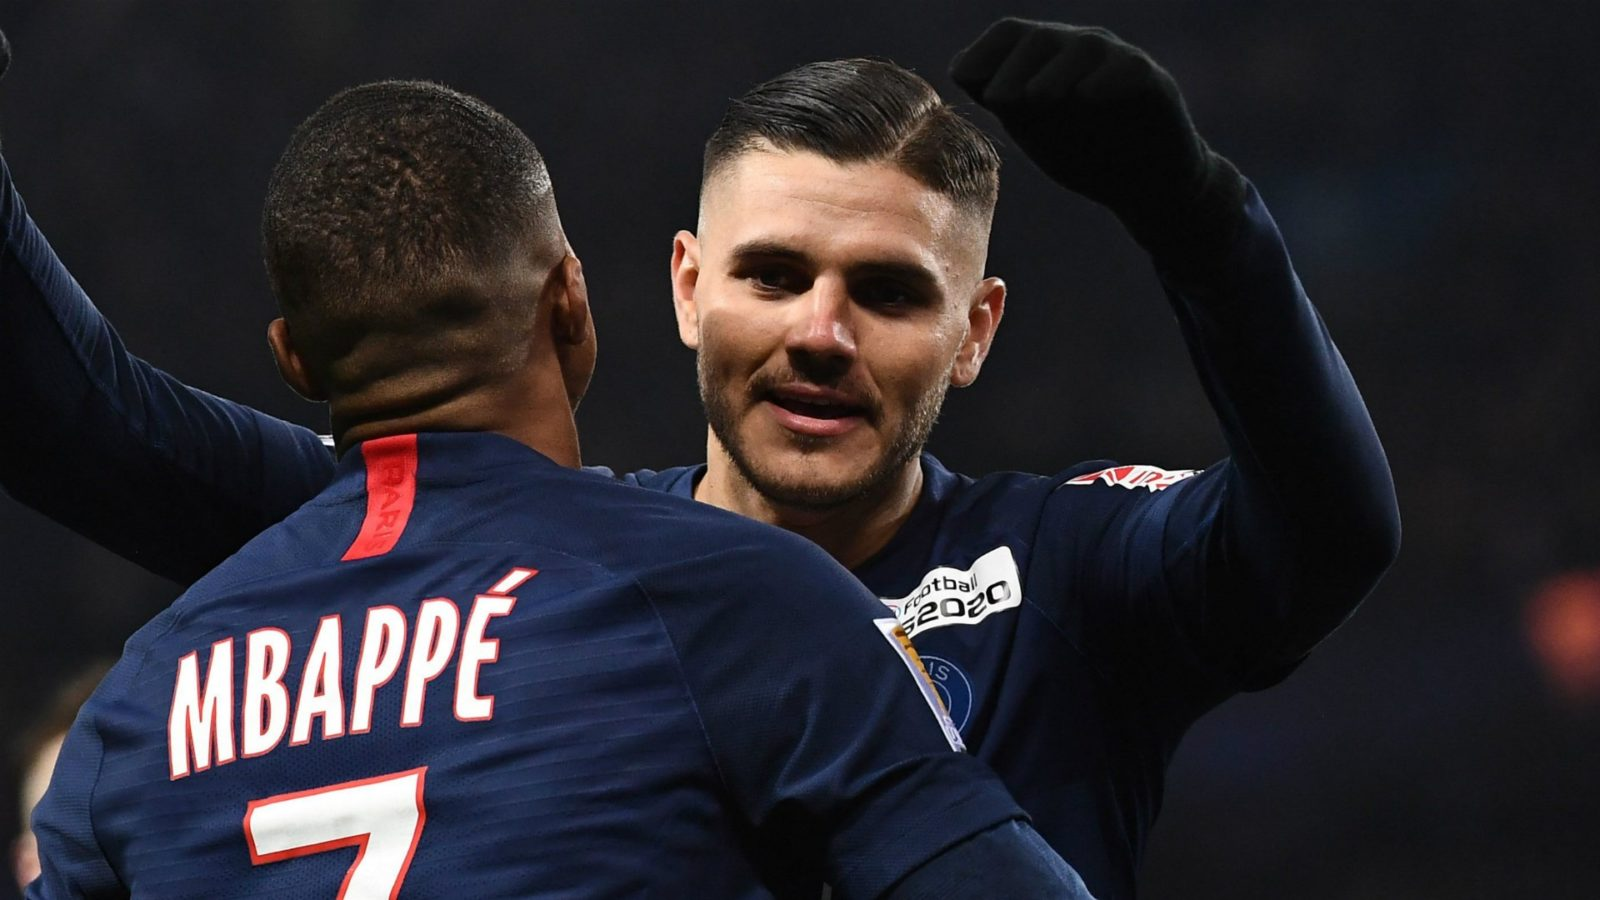 icardi-'would-be-happy'-to-remain-at-psg-as-ligue-1-giants-mull-over-e70m-deal